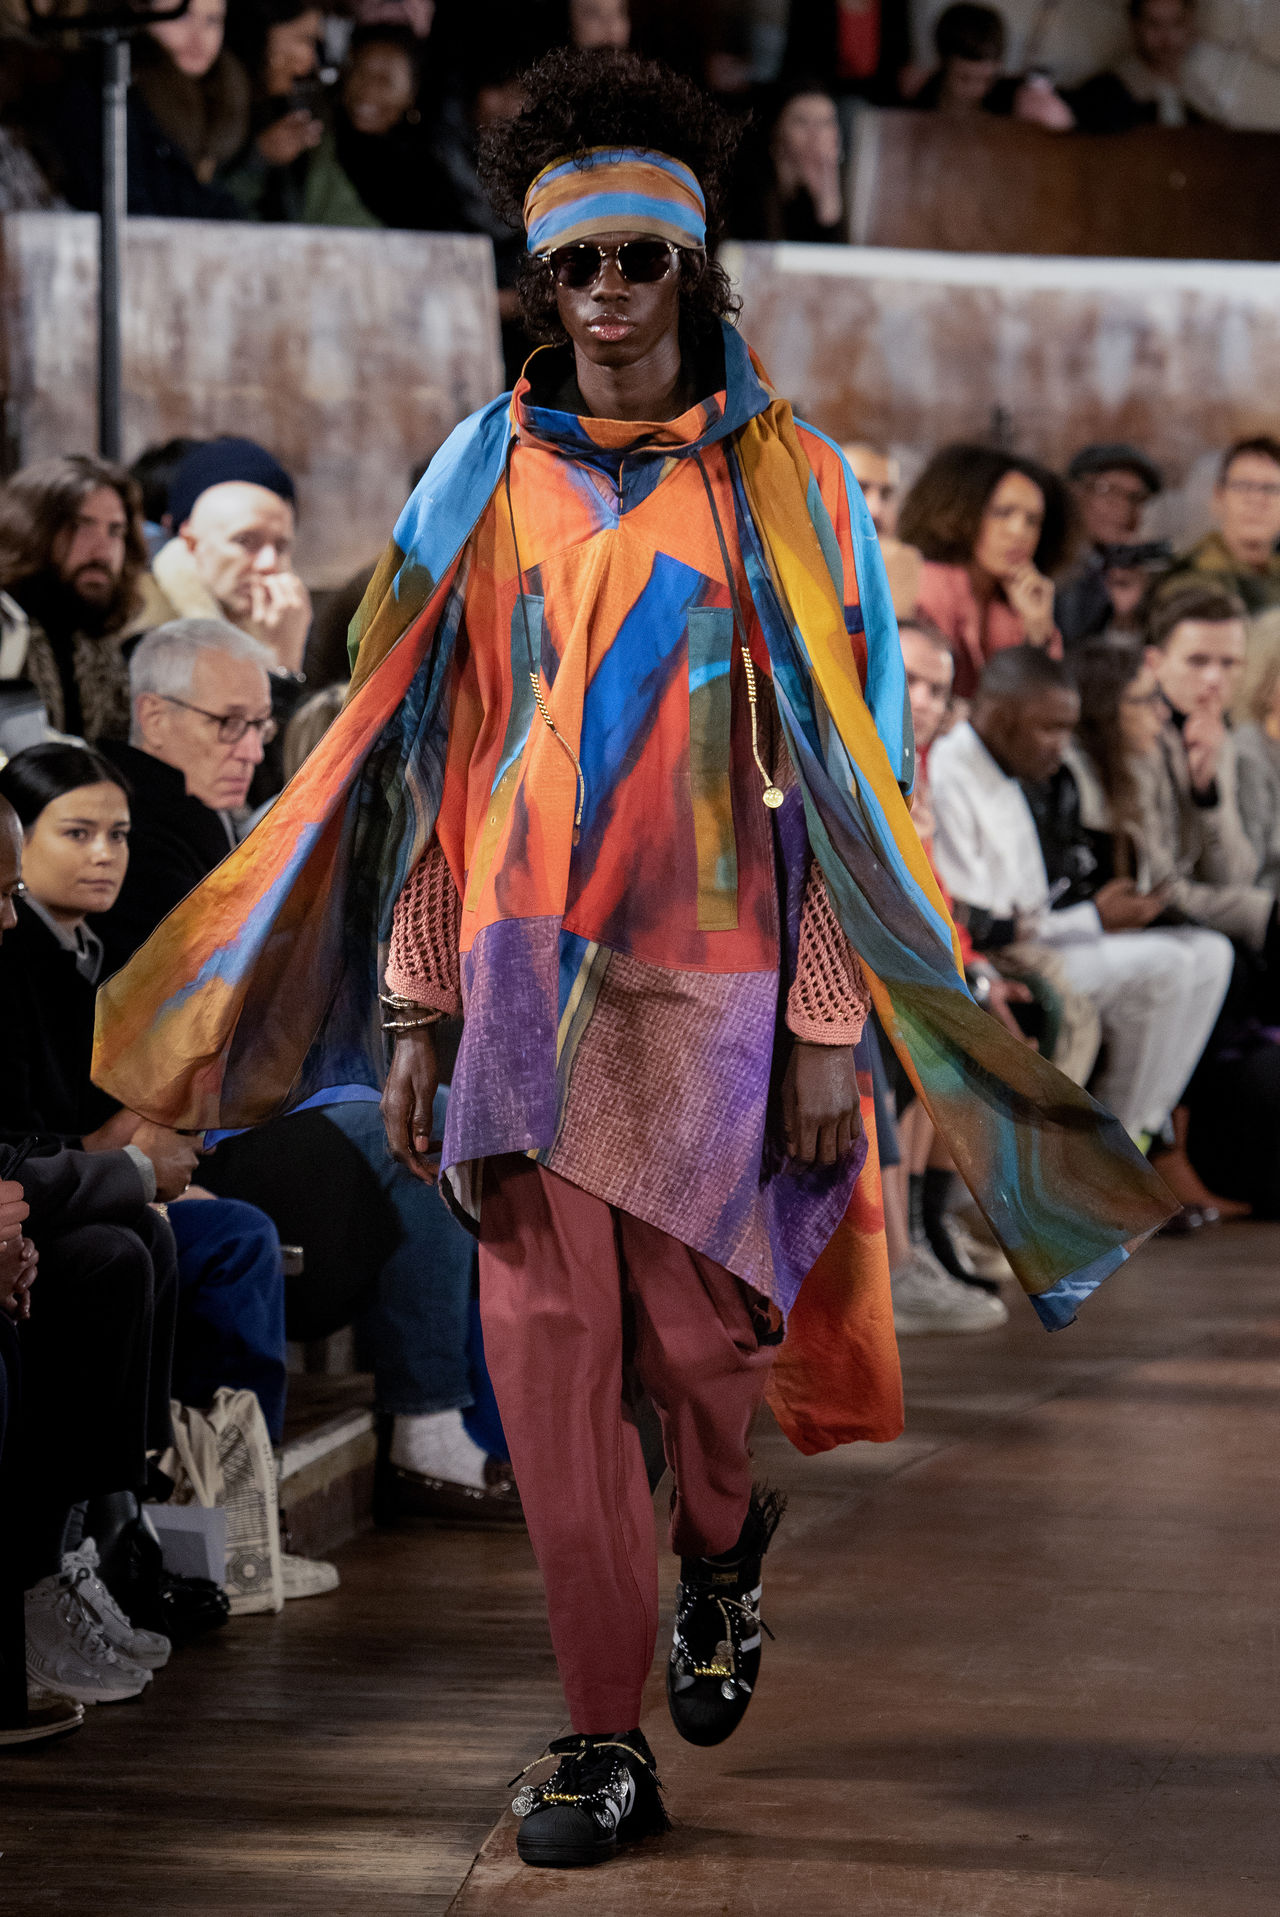 A model walking down the runway wearing Nicholas Daley's Autumn Winter 2020 collection. This look is a riot of colour and flowing print.